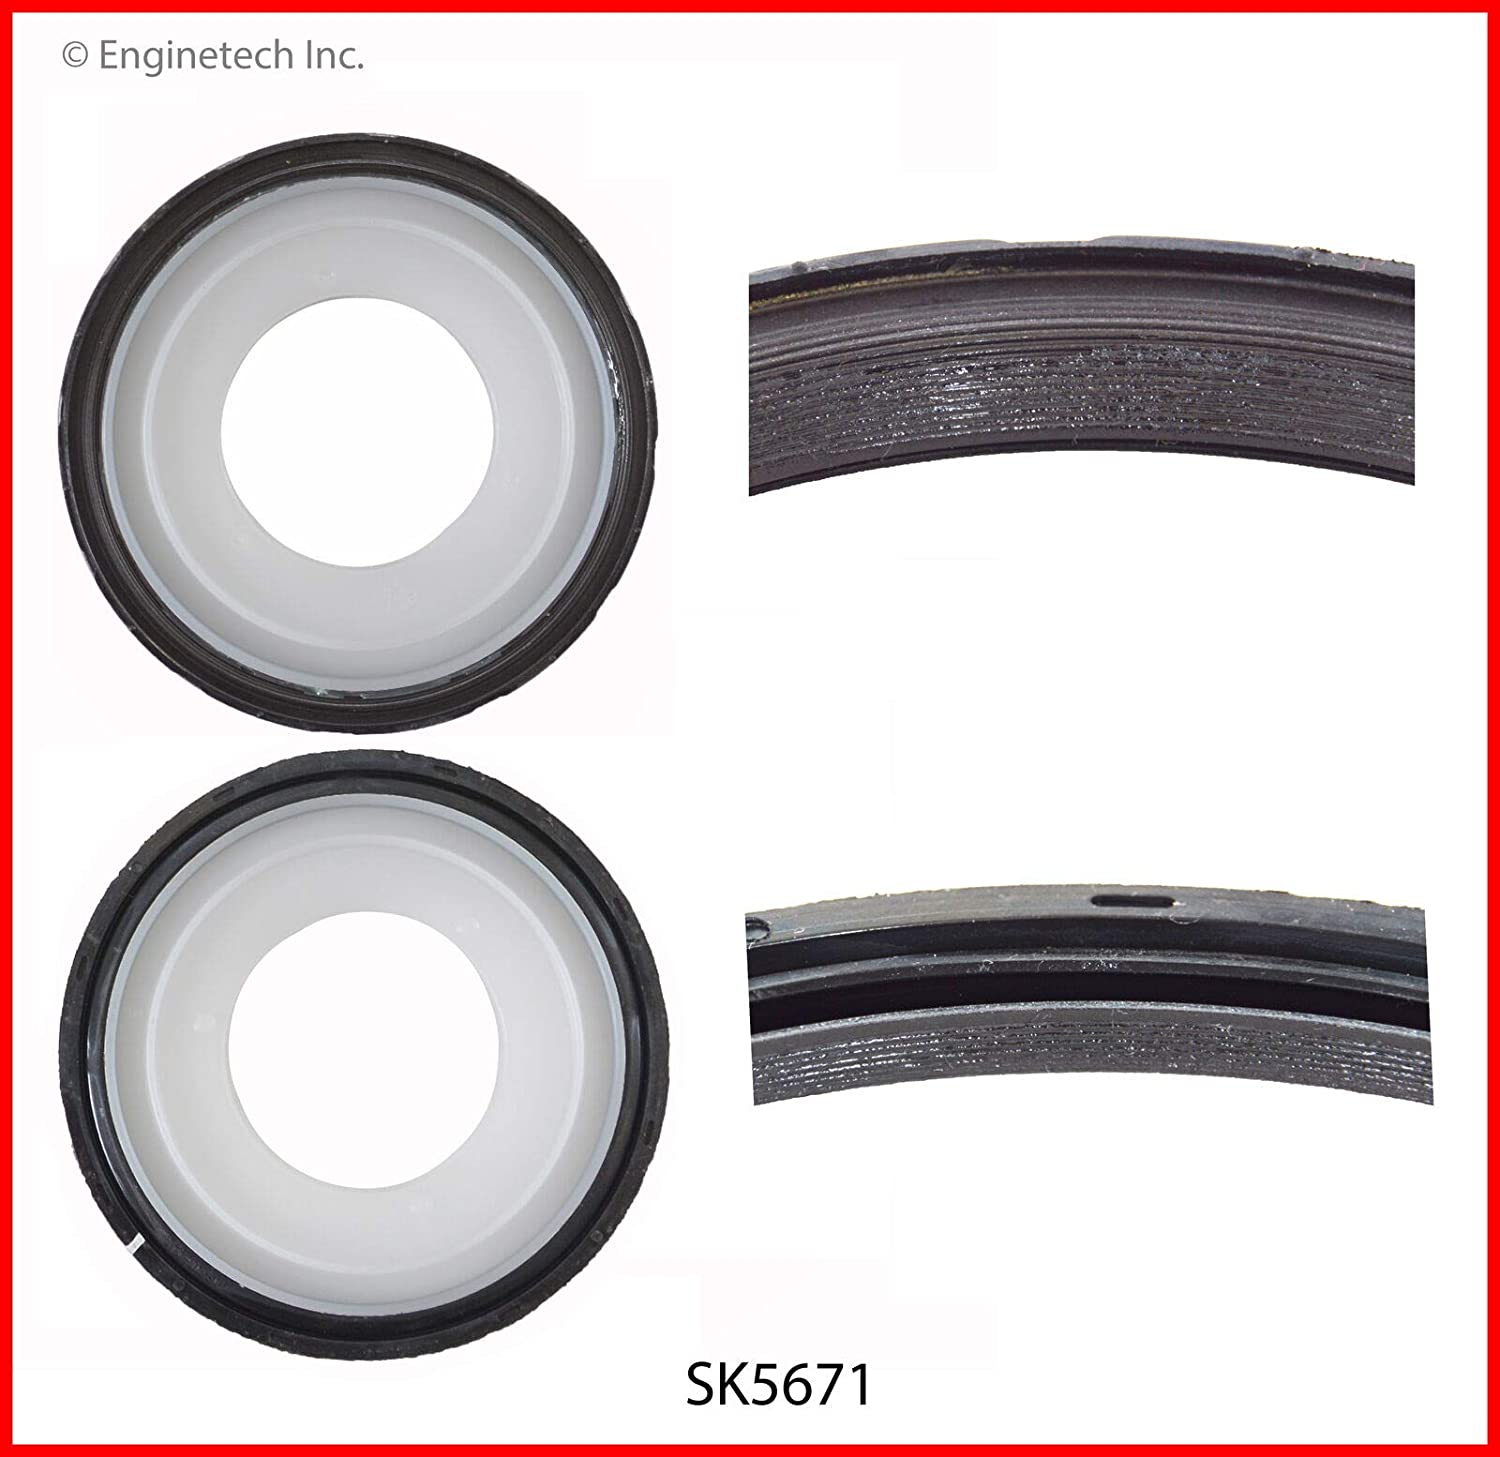 Enginetech SK5671 Seal R Main GM 4.8L 5.3L 6.0L WITH HOUSING GASKET